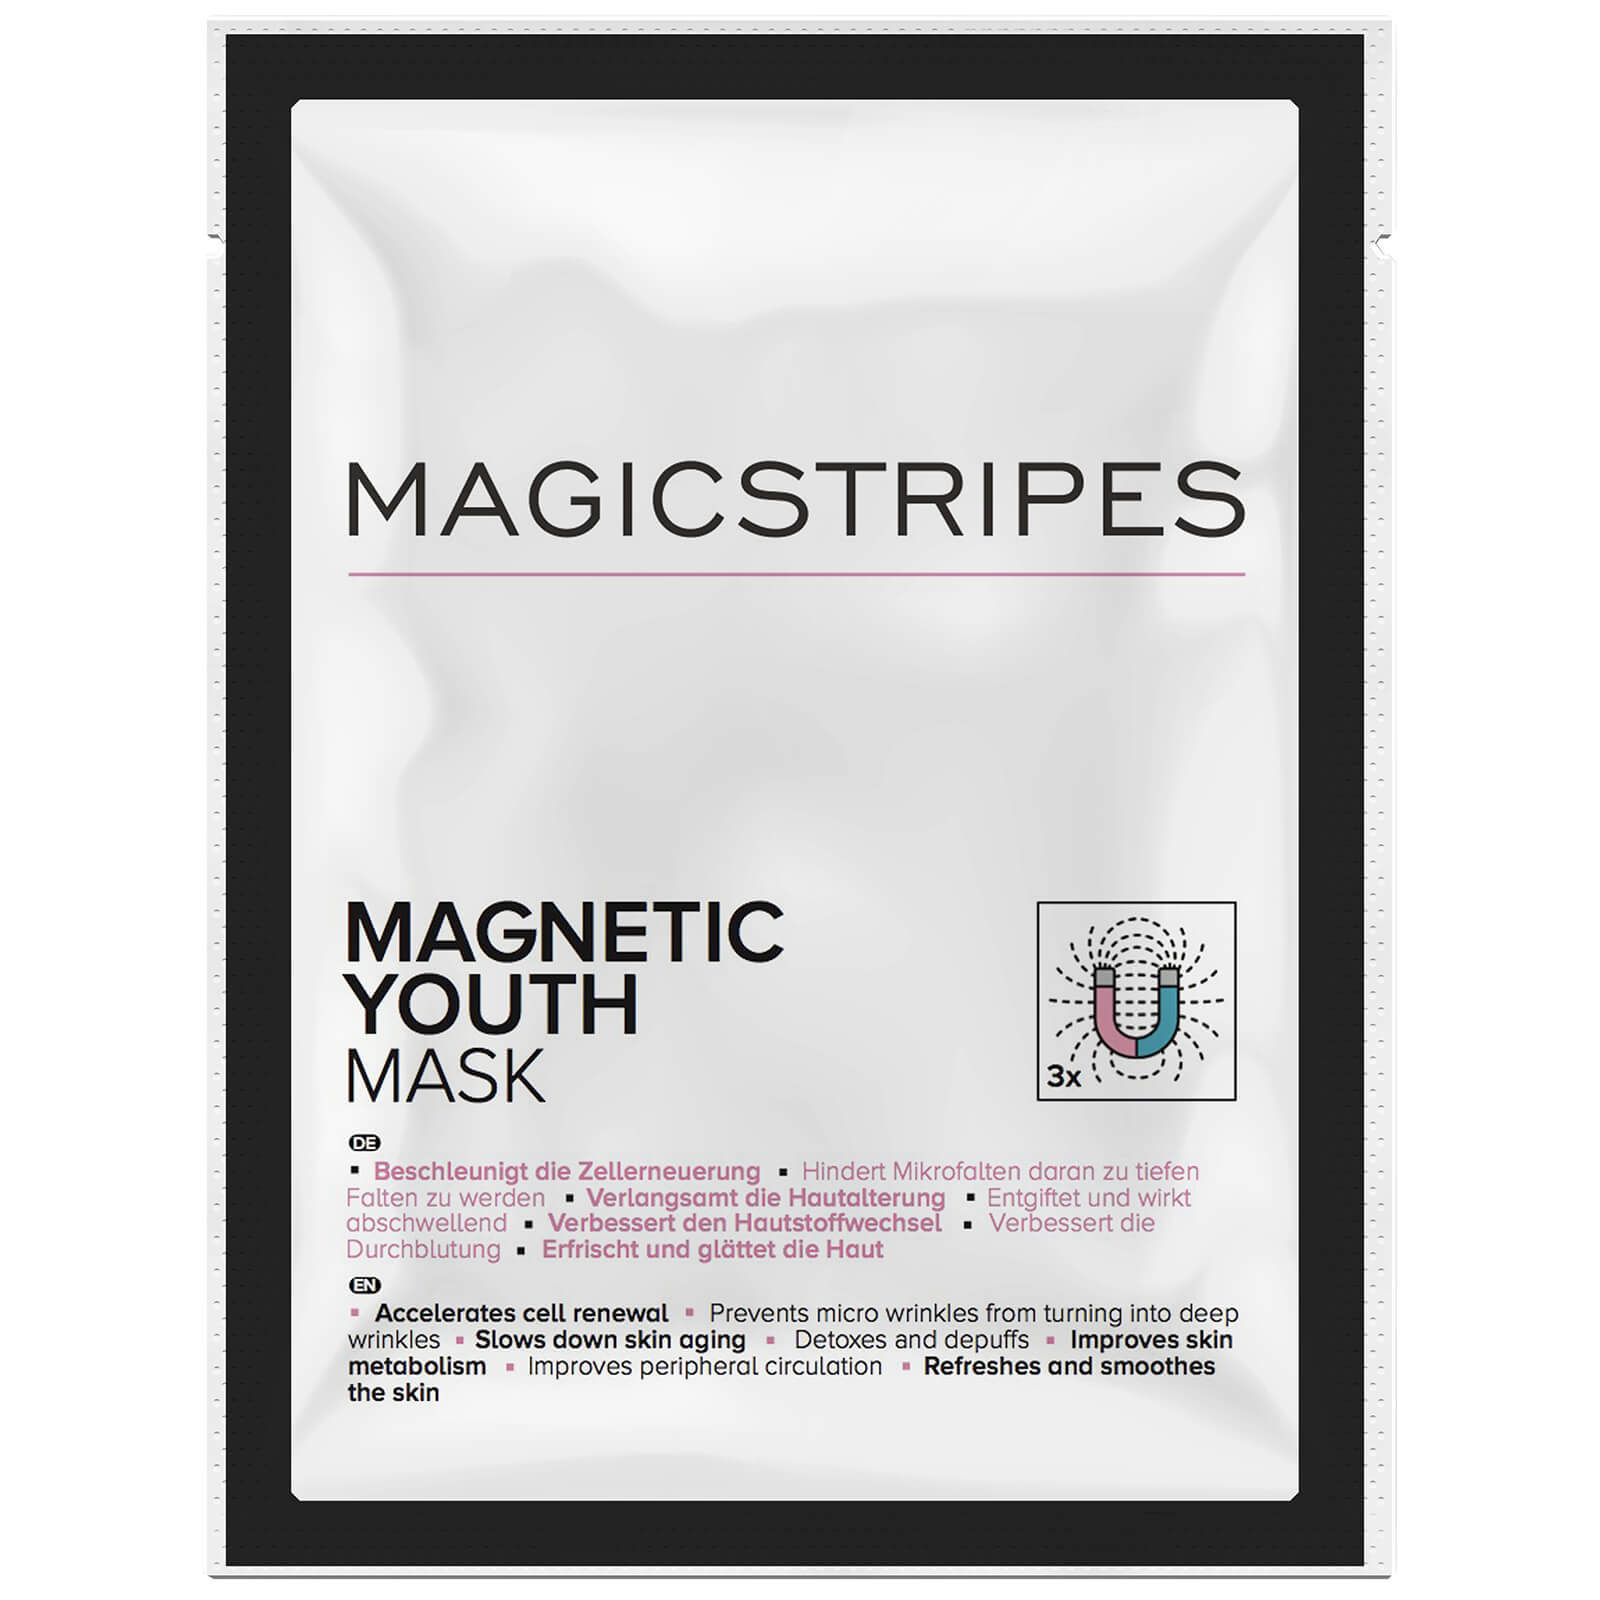 Mascarilla Magnetic Youth de Magicstripes